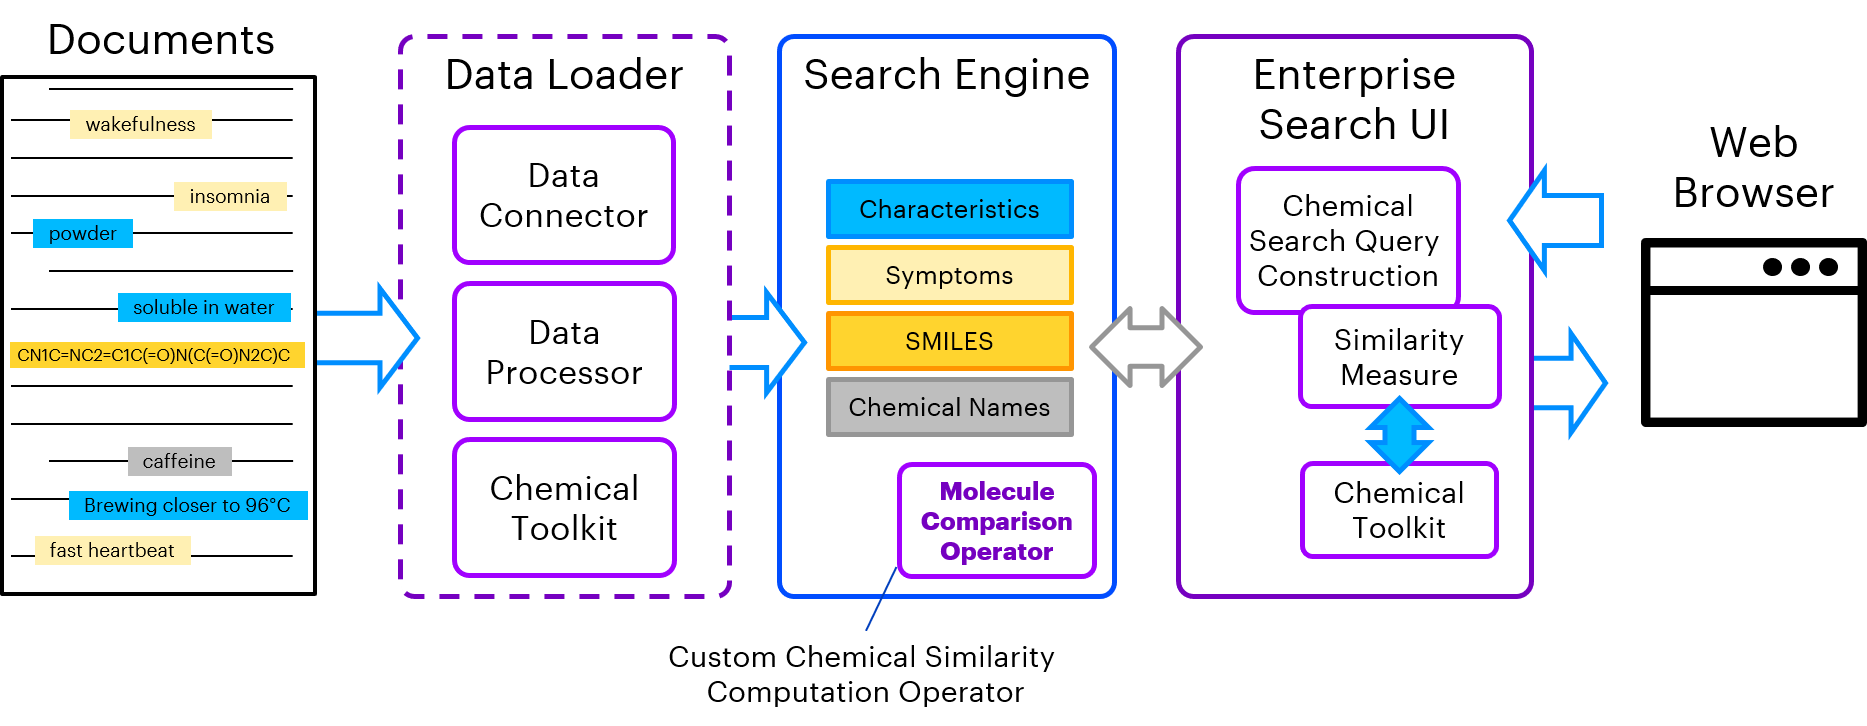 chemical search application architecture